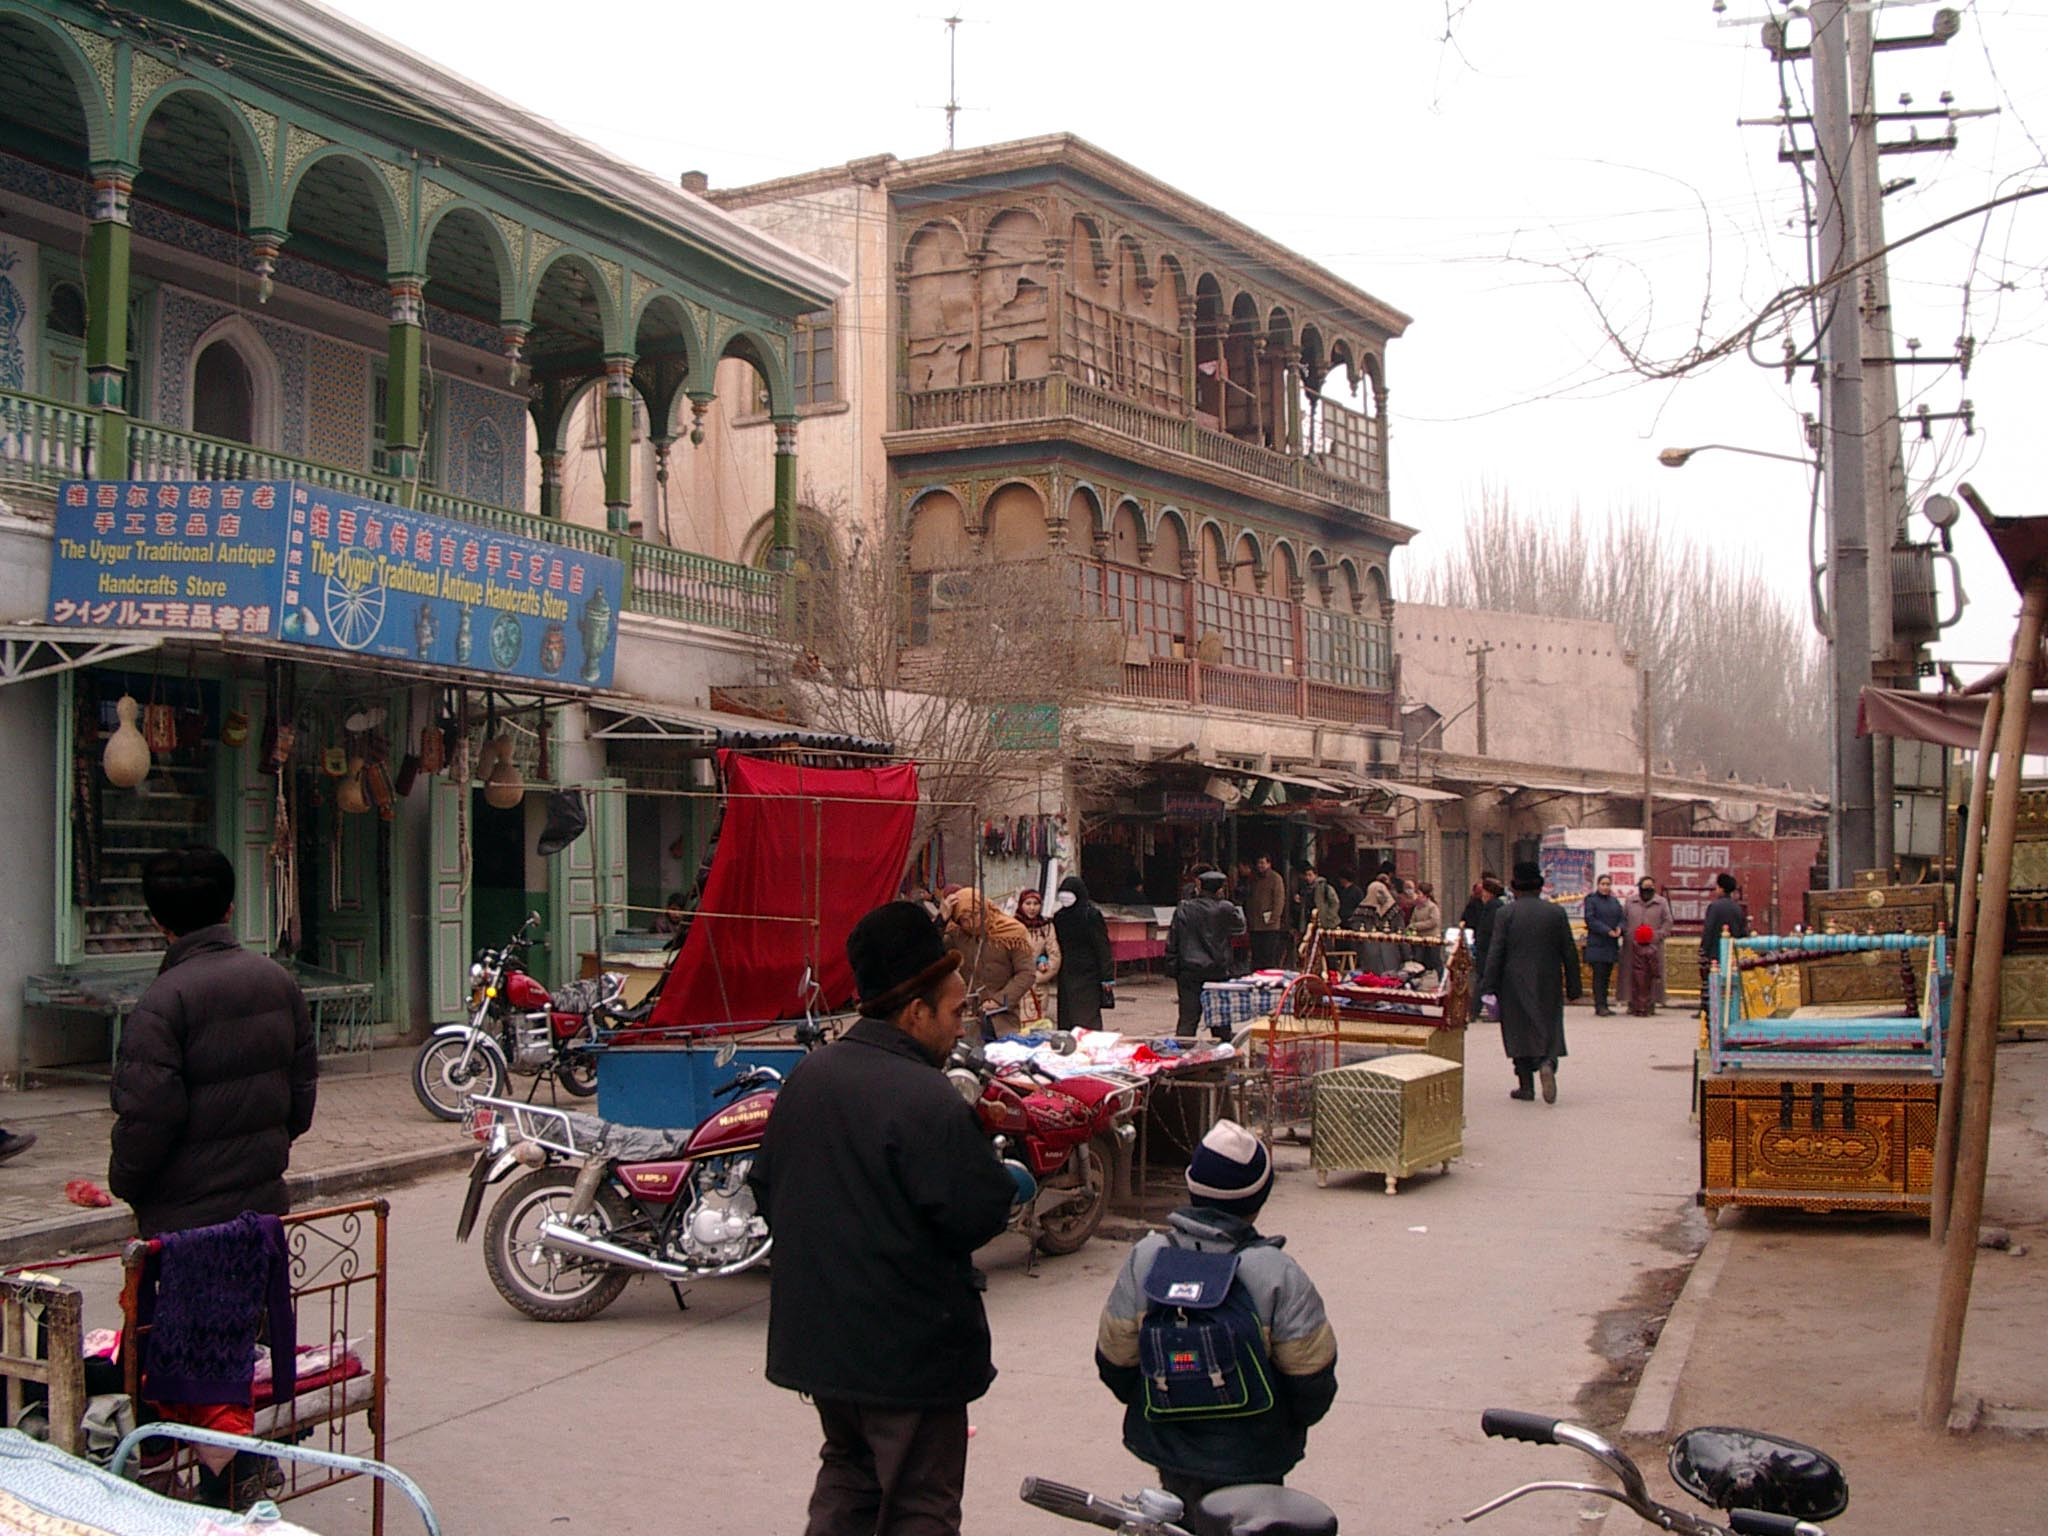 Kashgar street scene with Uyghur architecture.